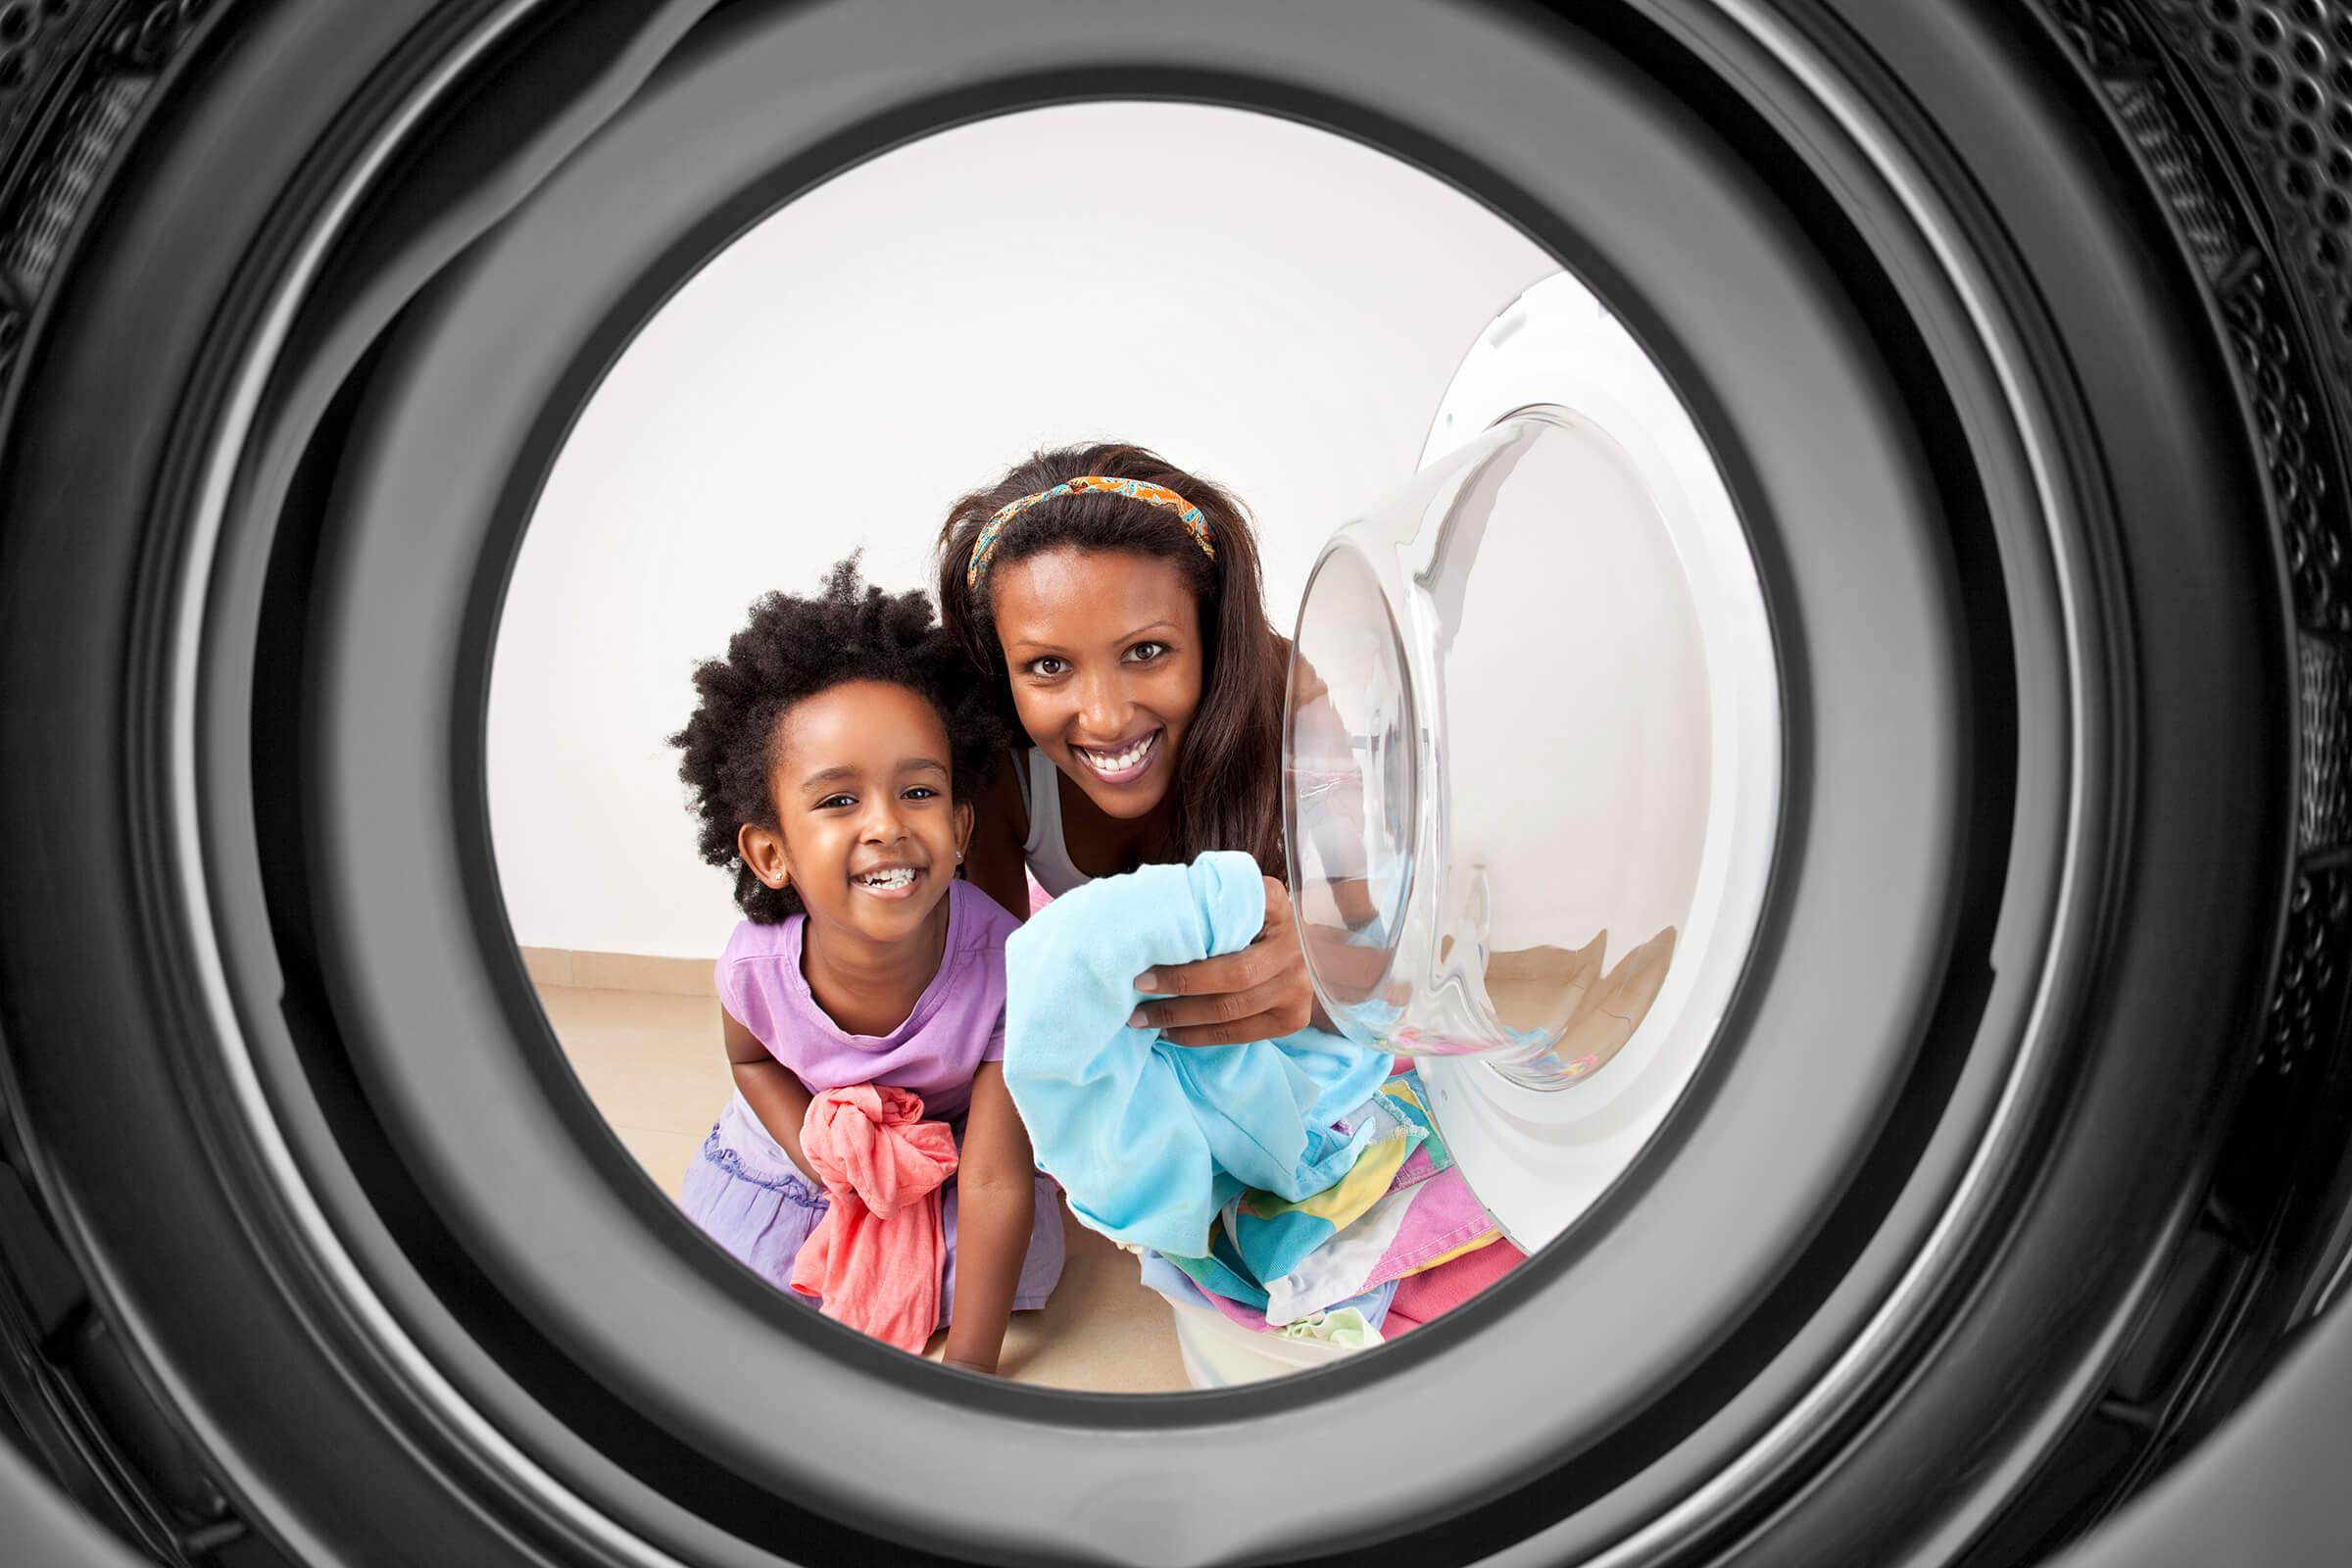 a washer in front of a mirror posing for the camera